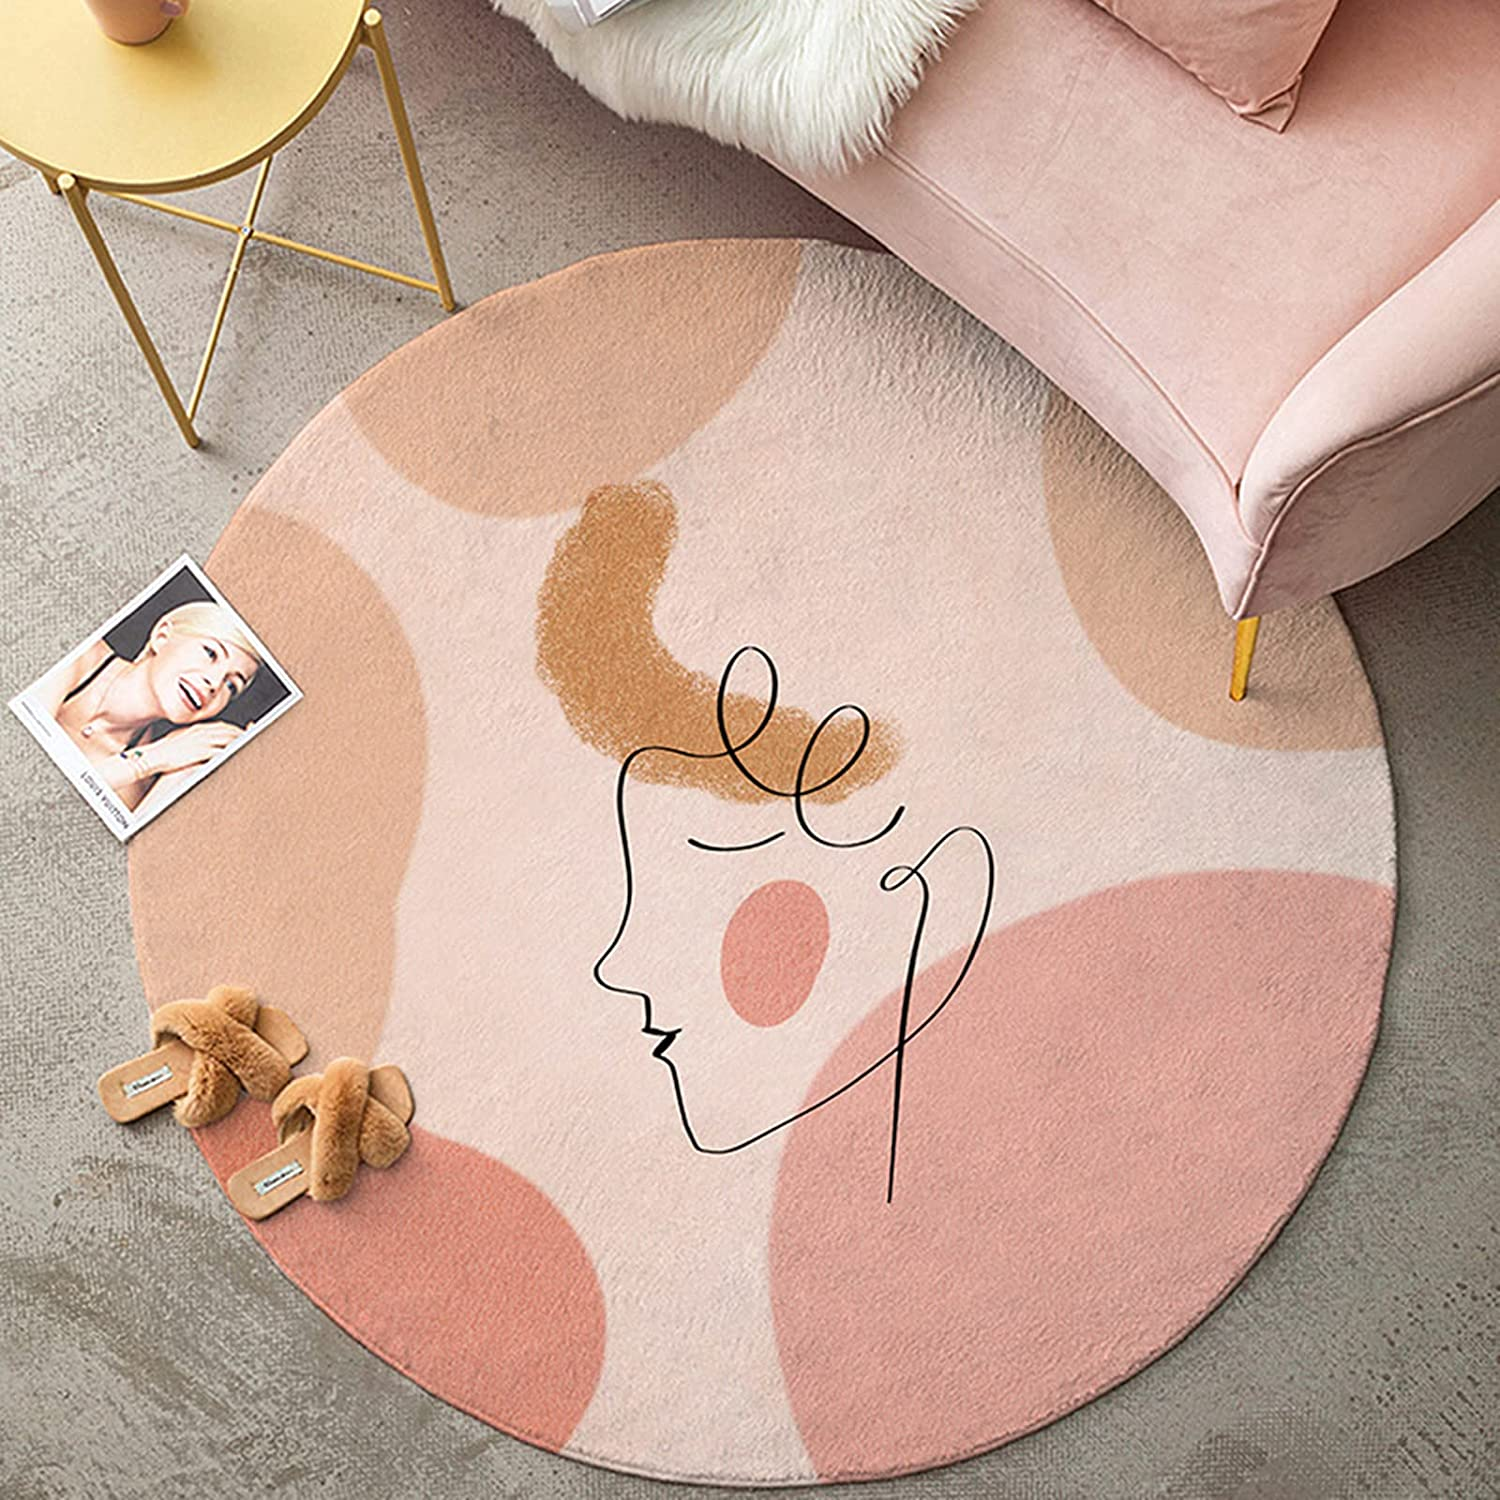 YoKii Cute Pink Round Rug 3ft for Bedroom Living Room Modern Boho Faux Wool Soft Circle Bathroom Rug Rubber Backed Small Area Rugs Abstract Aesthetic Dorm Carpet Room Deocr (Rounnd-3ft, Pink)